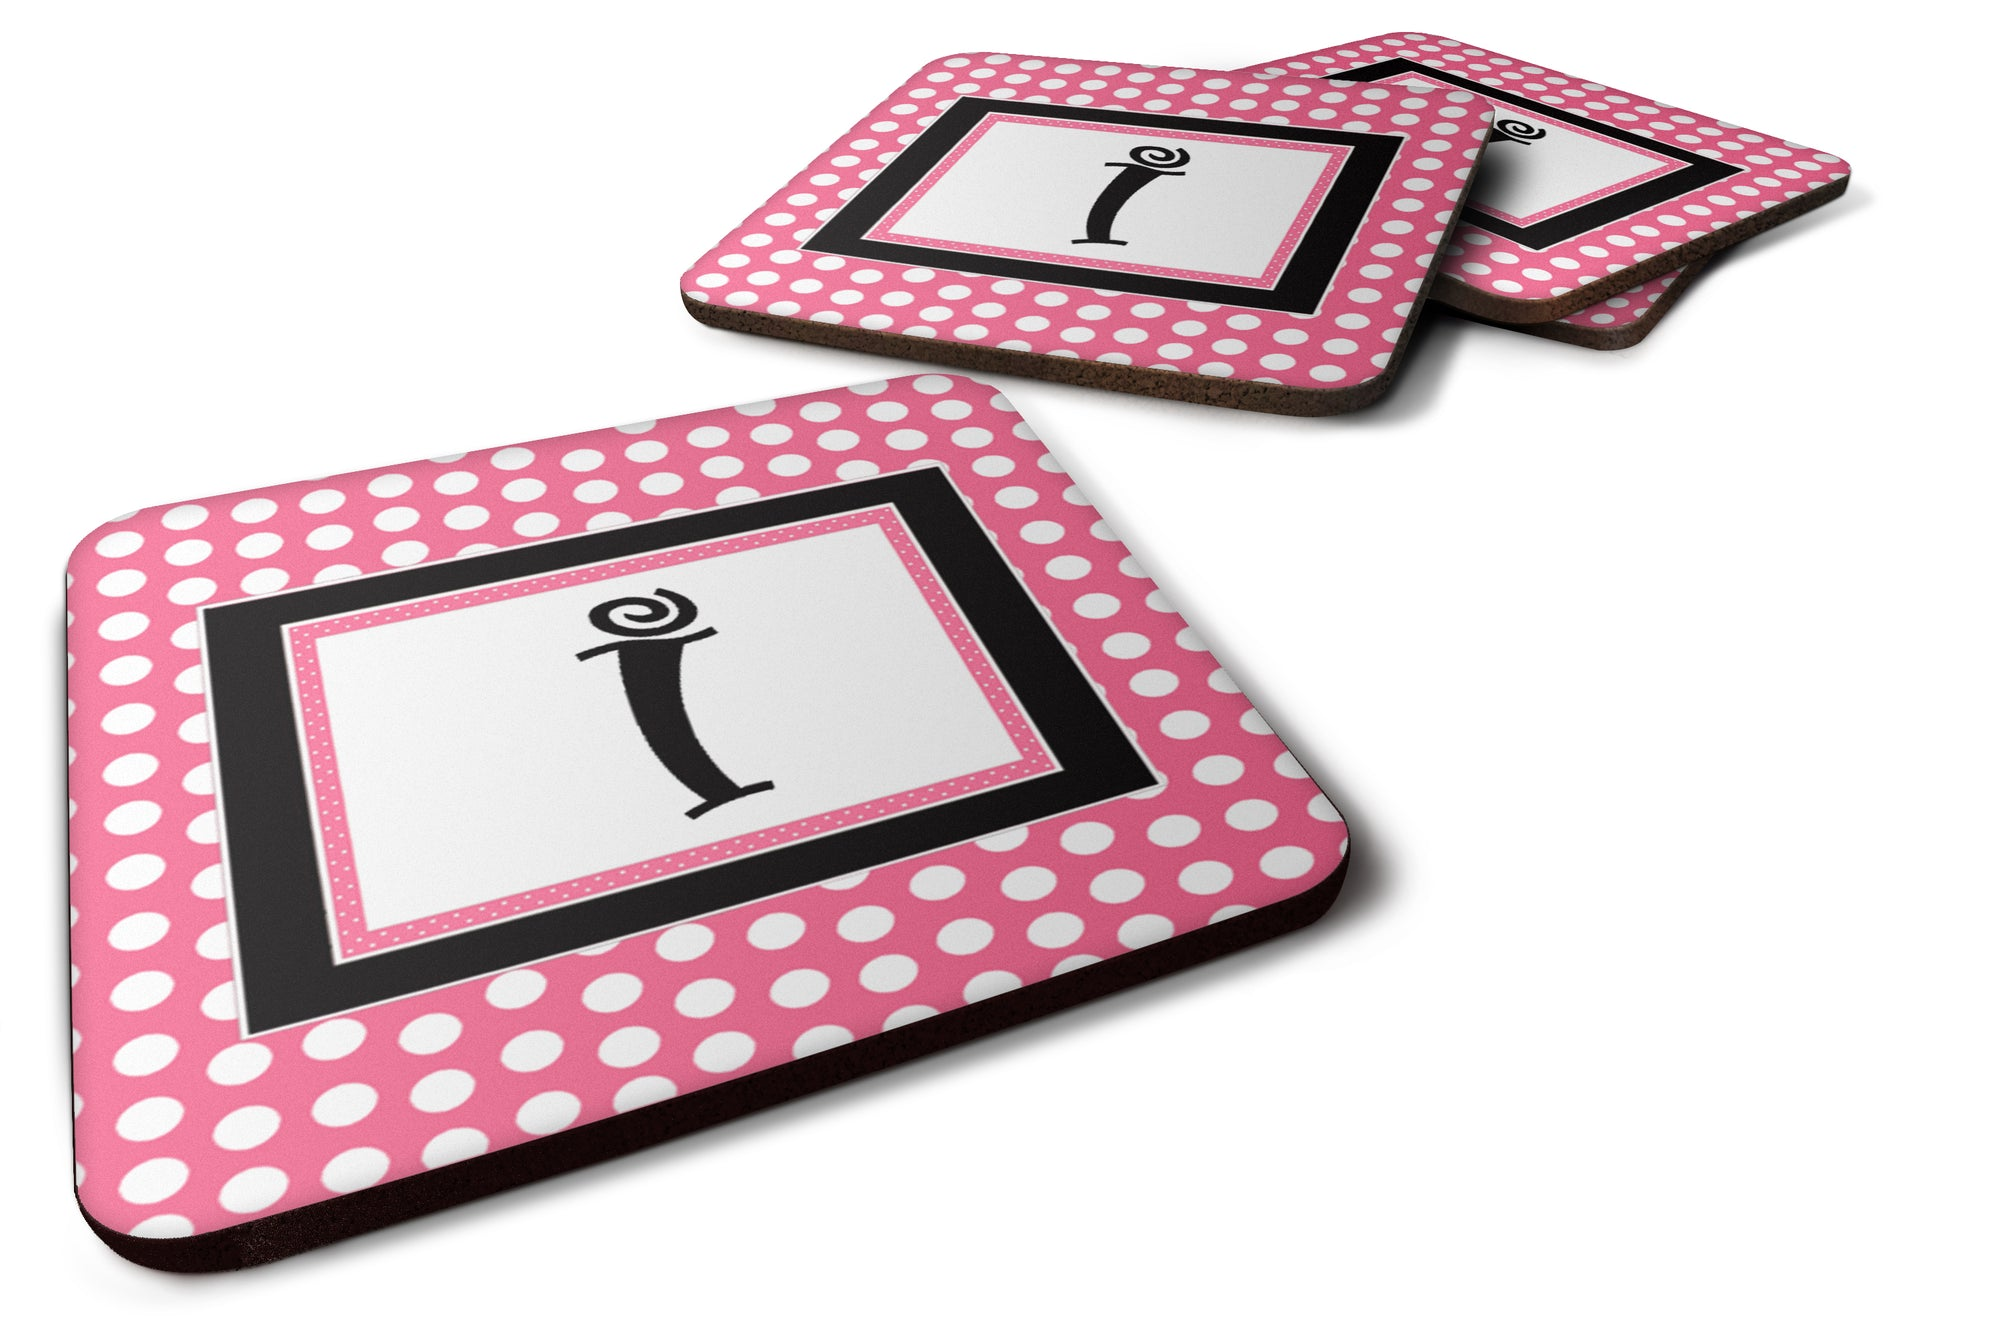 Set of 4 Monogram - Pink Black Polka Dots Foam Coasters Initial Letter I by Caroline's Treasures